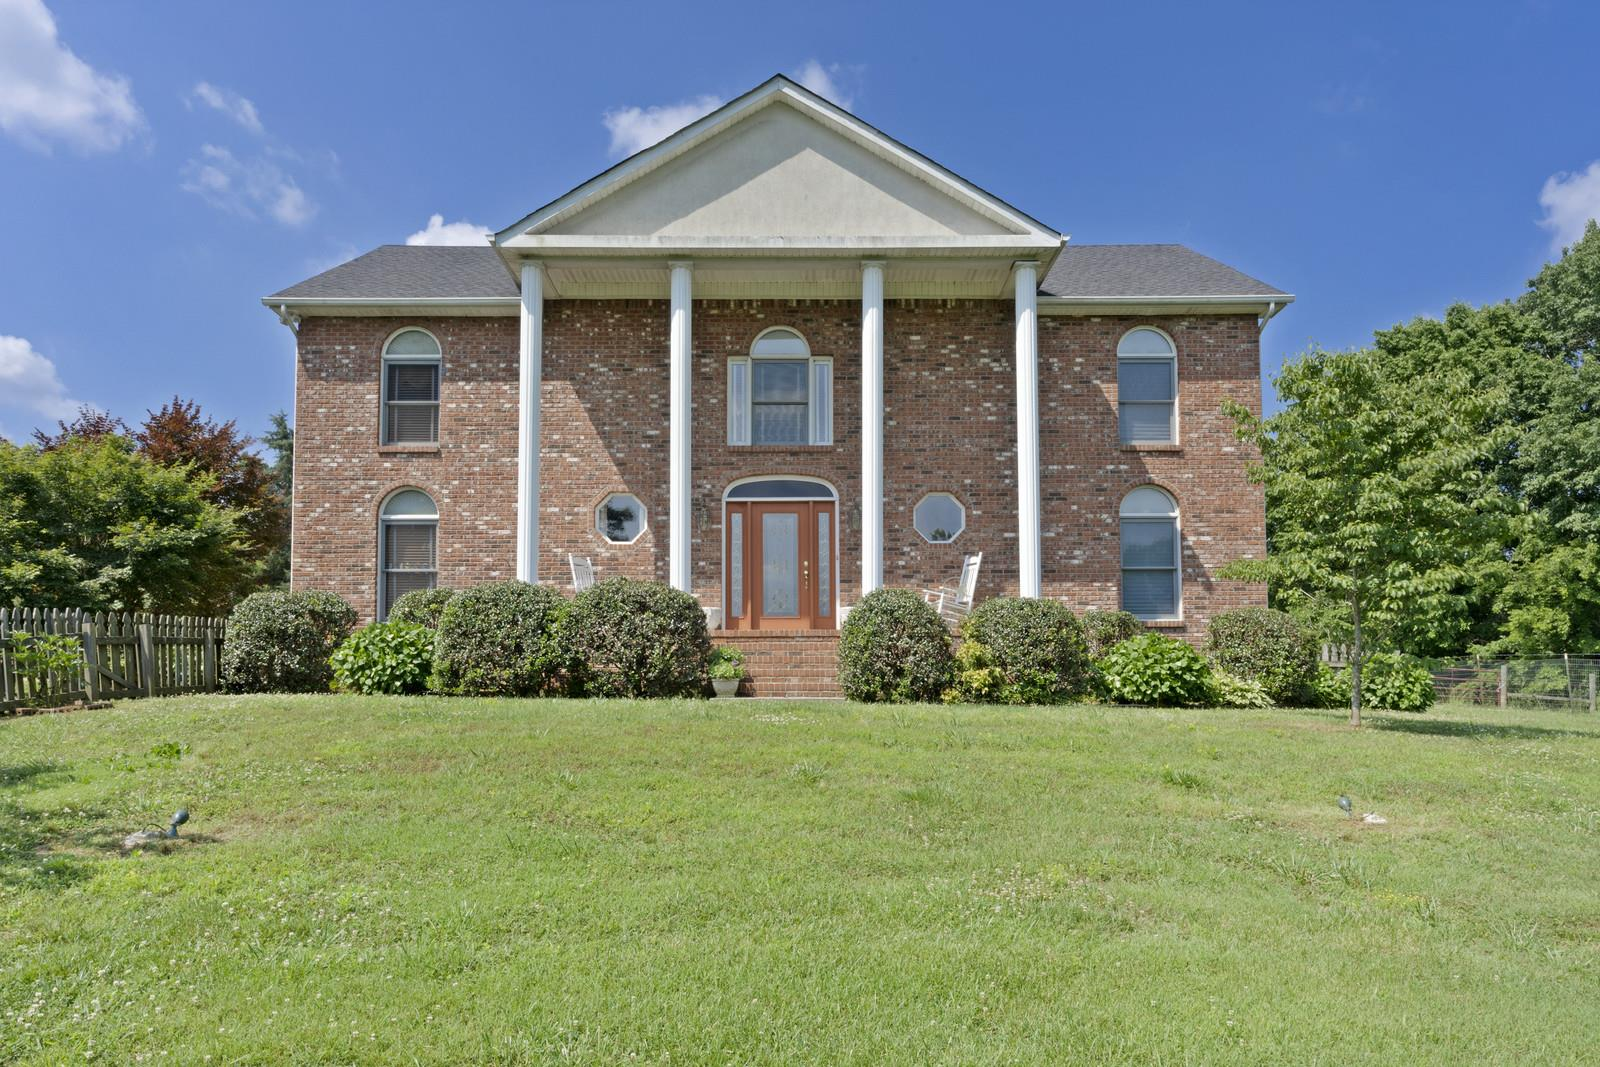 2156 Tom Austin Hwy, Greenbrier, TN 37073 - Greenbrier, TN real estate listing